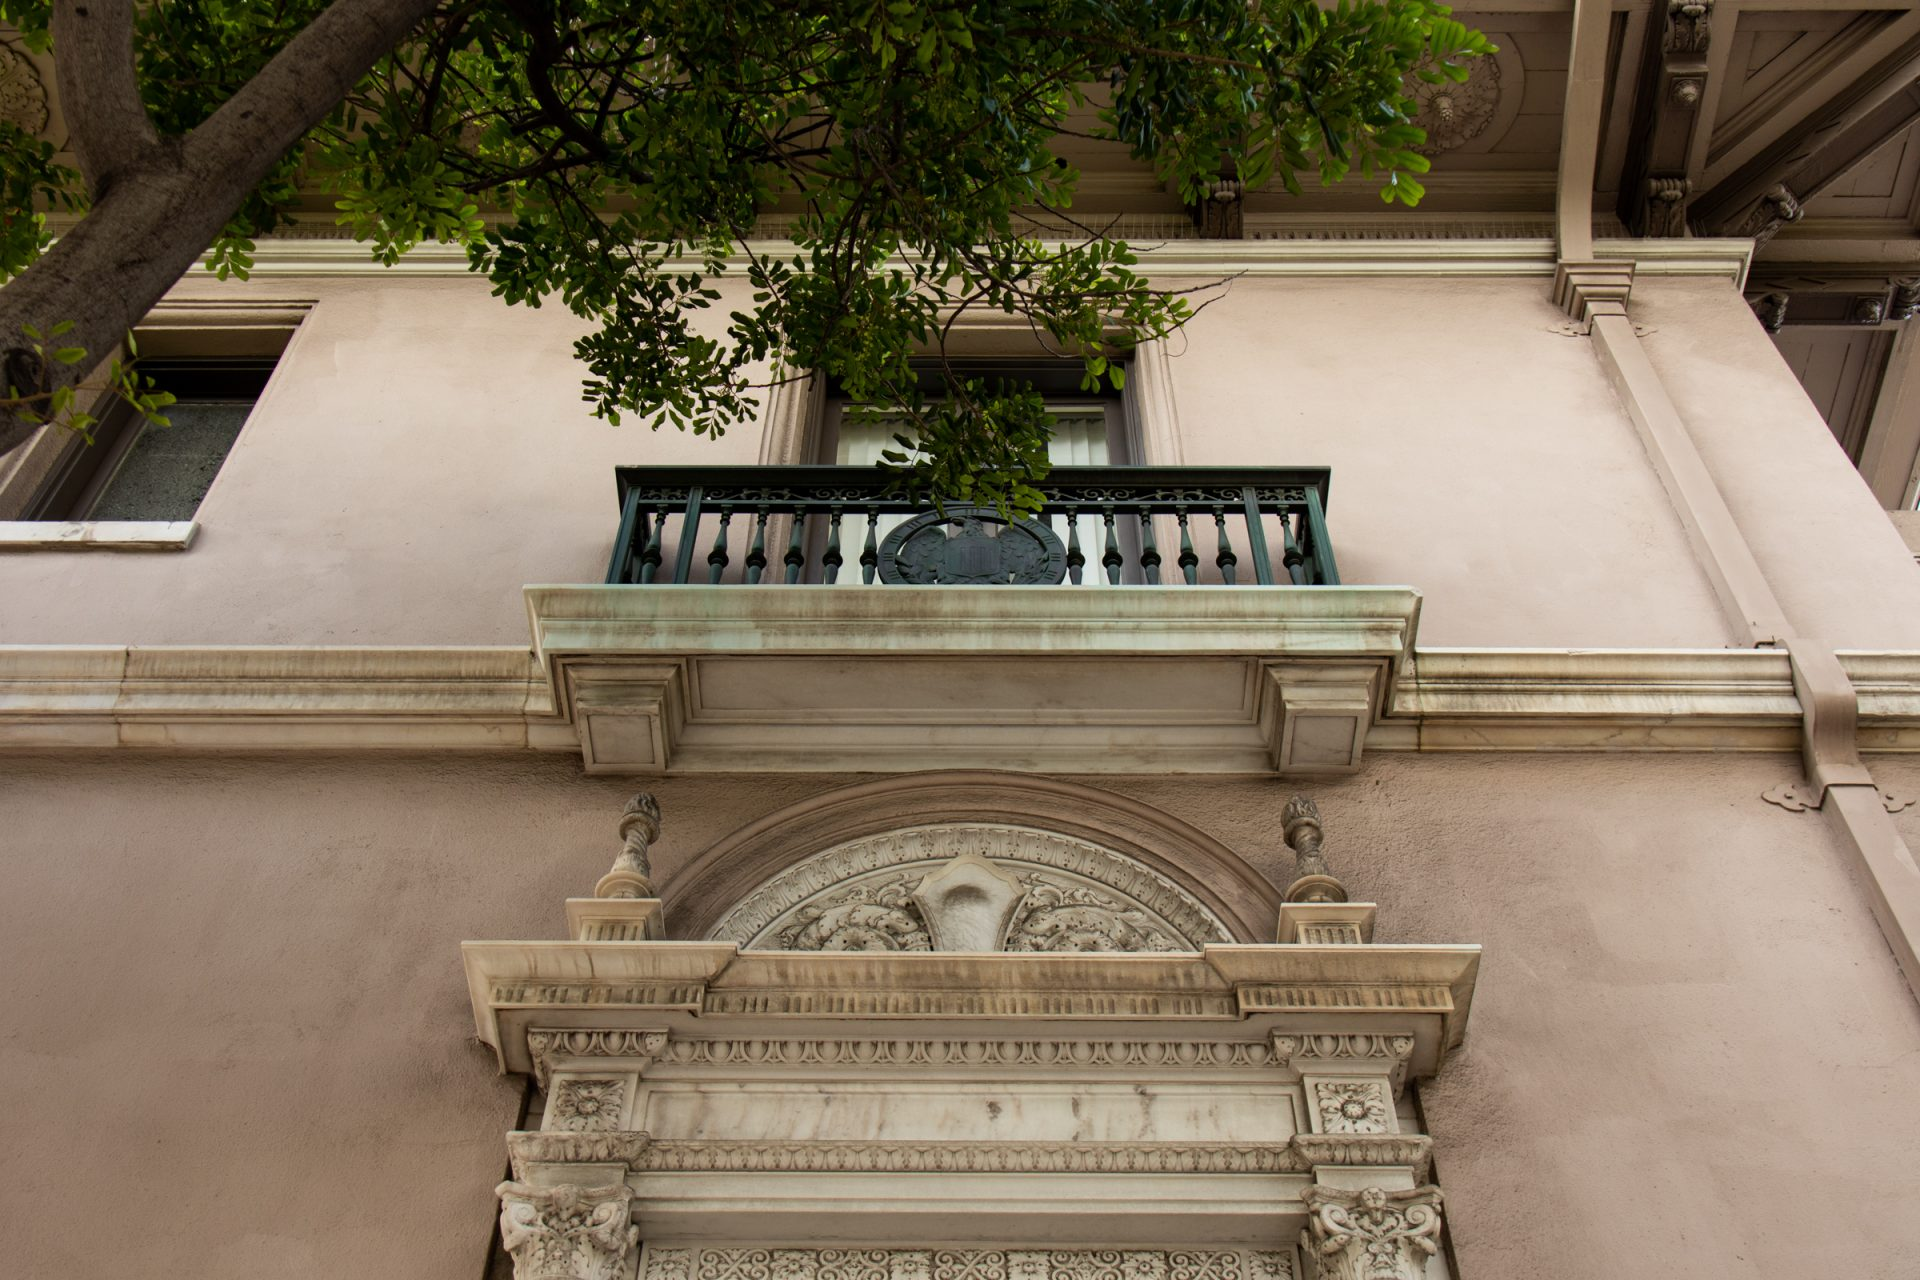 Balcony Of Building With Ornate Details